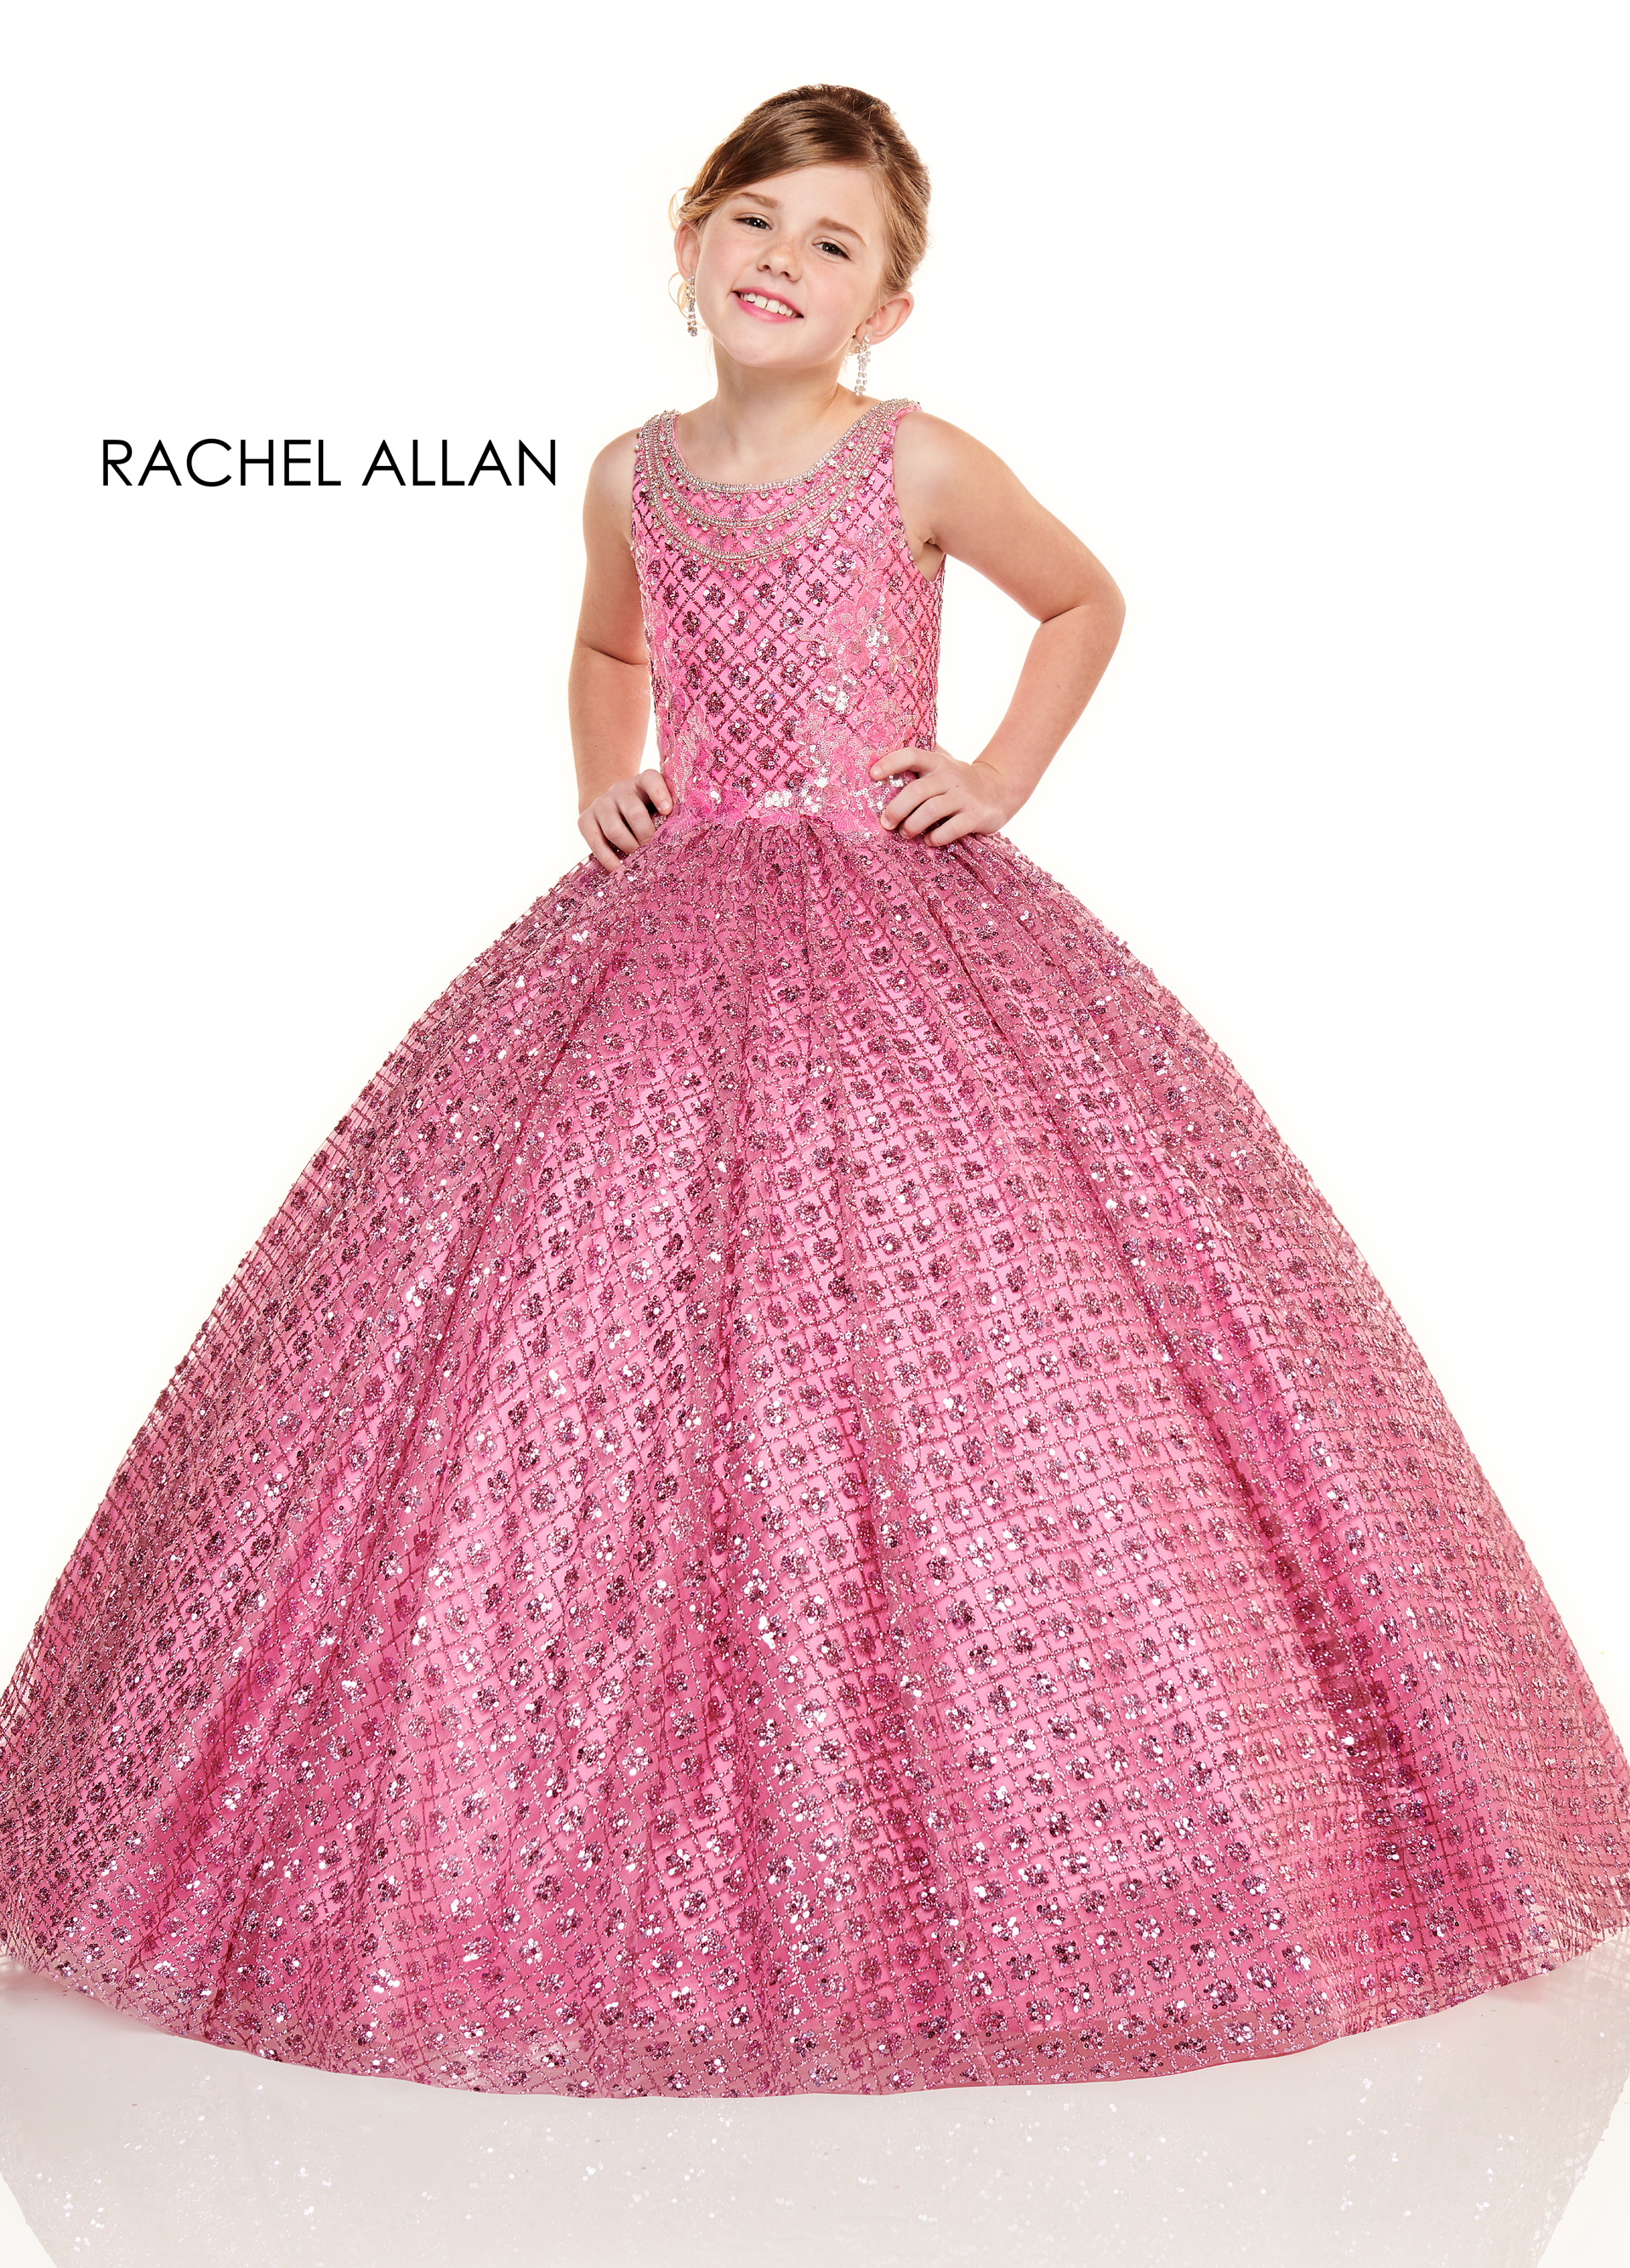 Scoop Neck Ball Gowns Little Girl Pageant Dresses in Pink Color